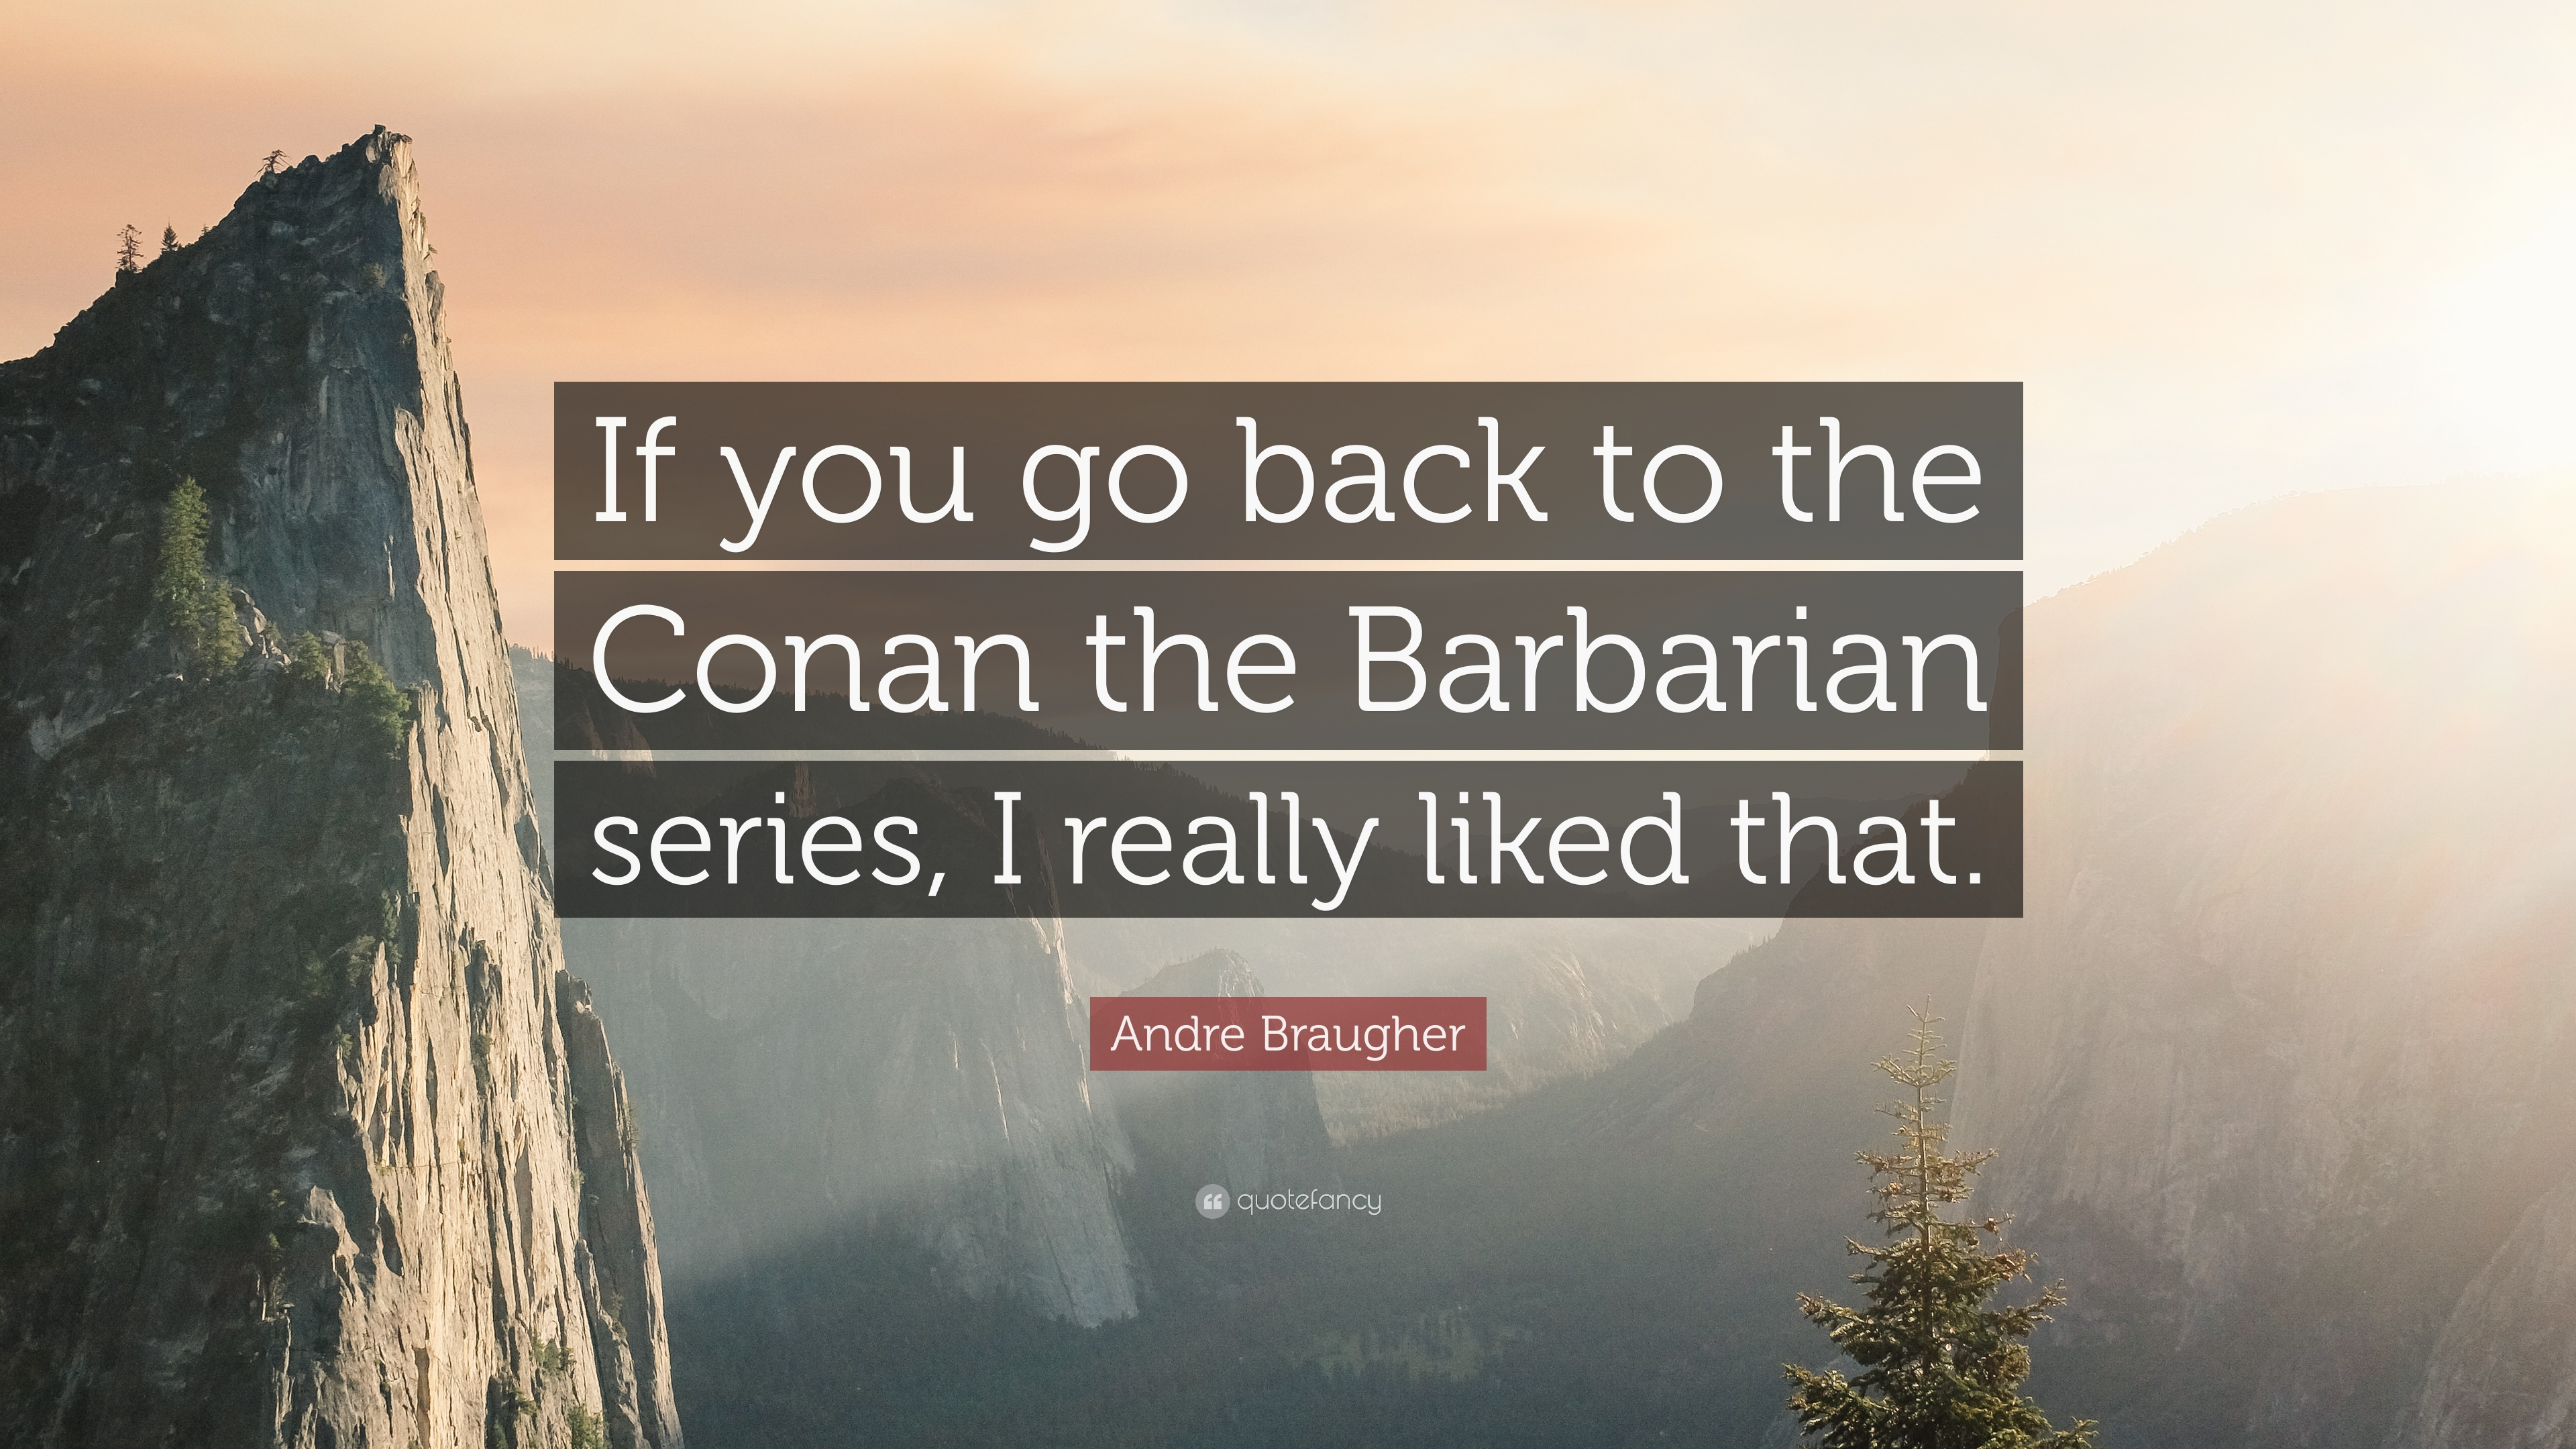 Conan The Barbarian Quotes | Andre Braugher Quotes 20 Wallpapers Quotefancy